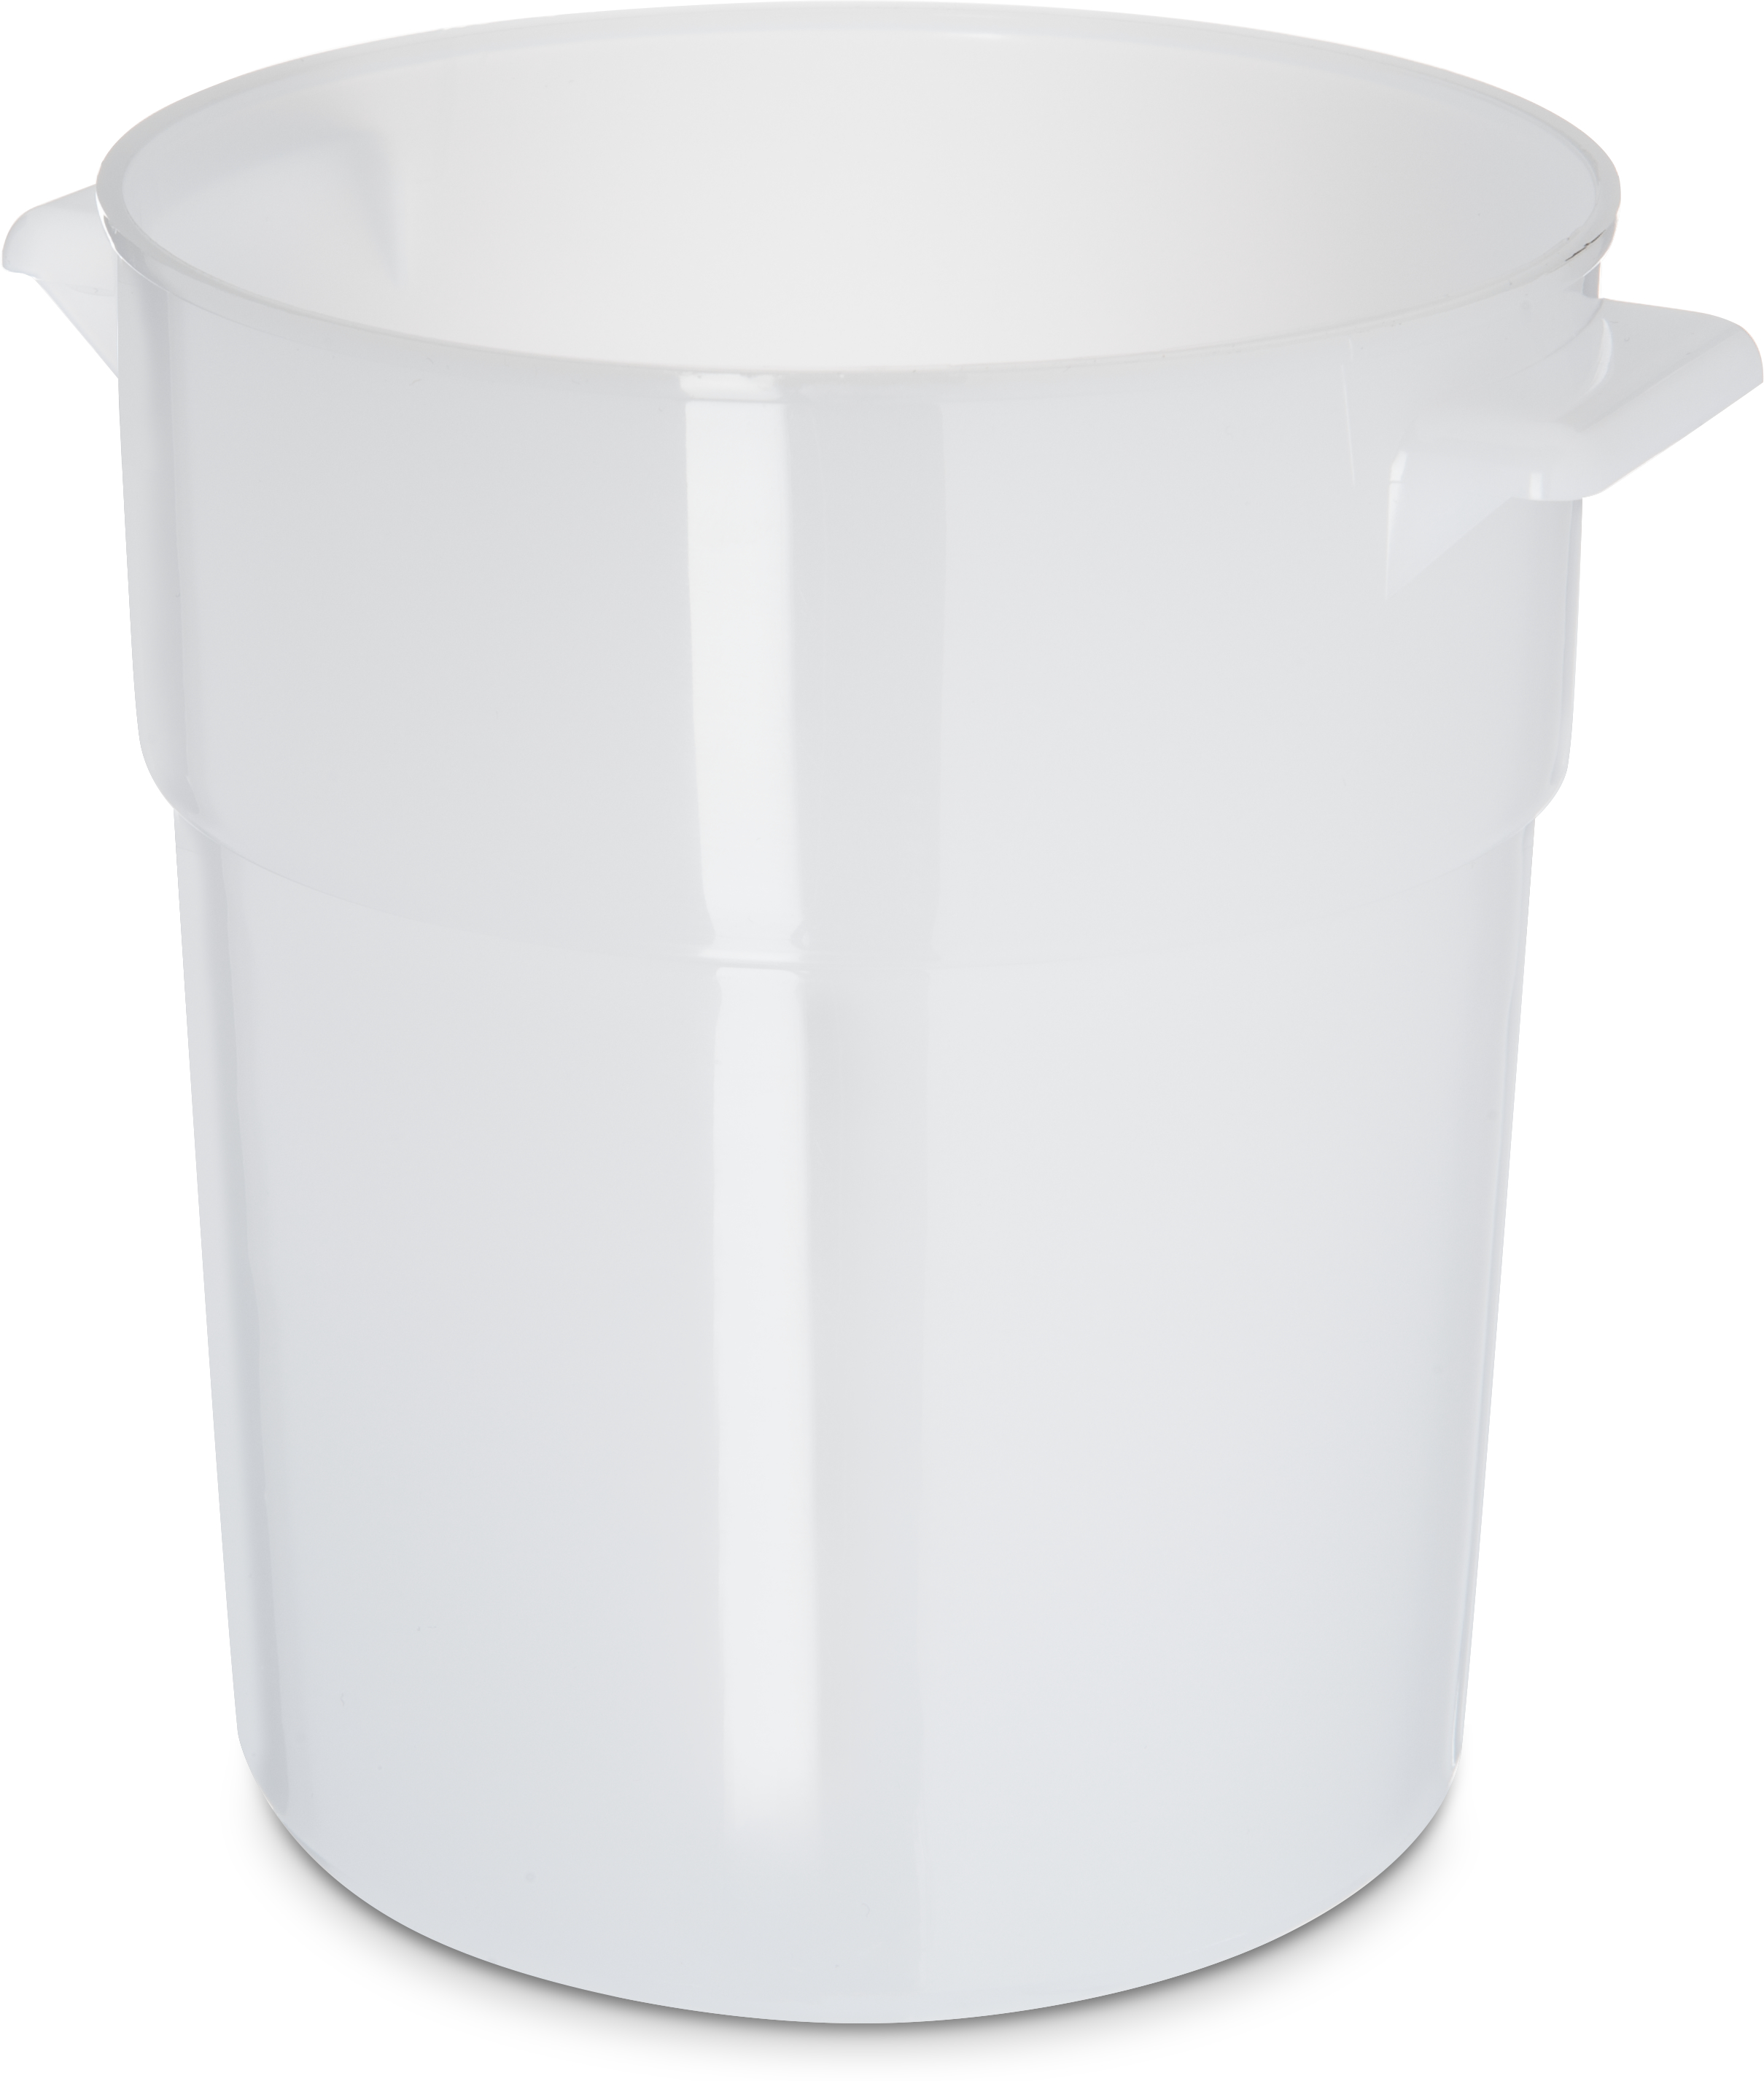 Bains Marie Container 3.5 qt - White